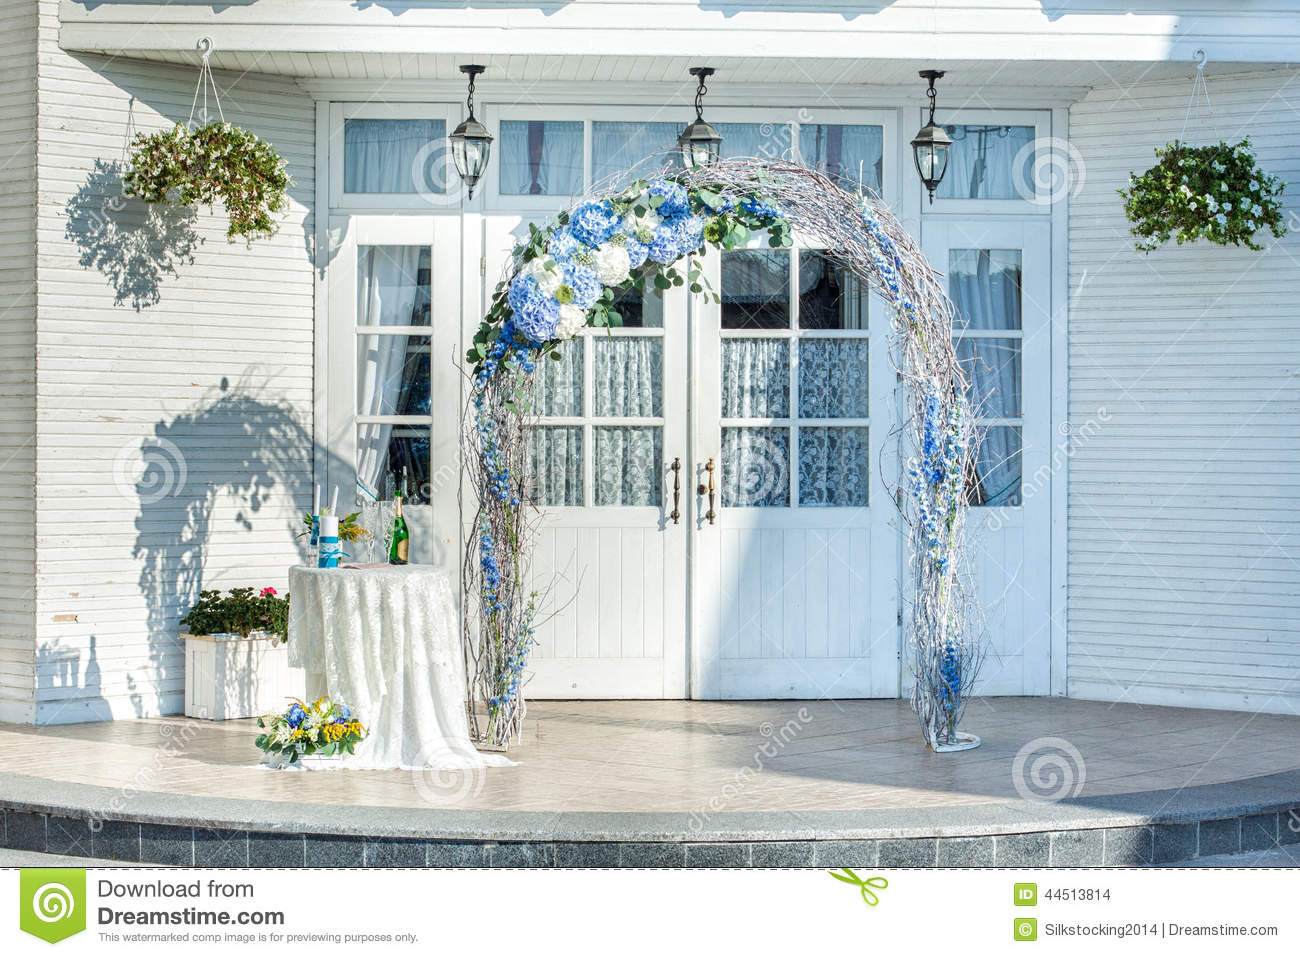 Wedding Arch Of Vines With Flowers Stock Photo - Image of light ...